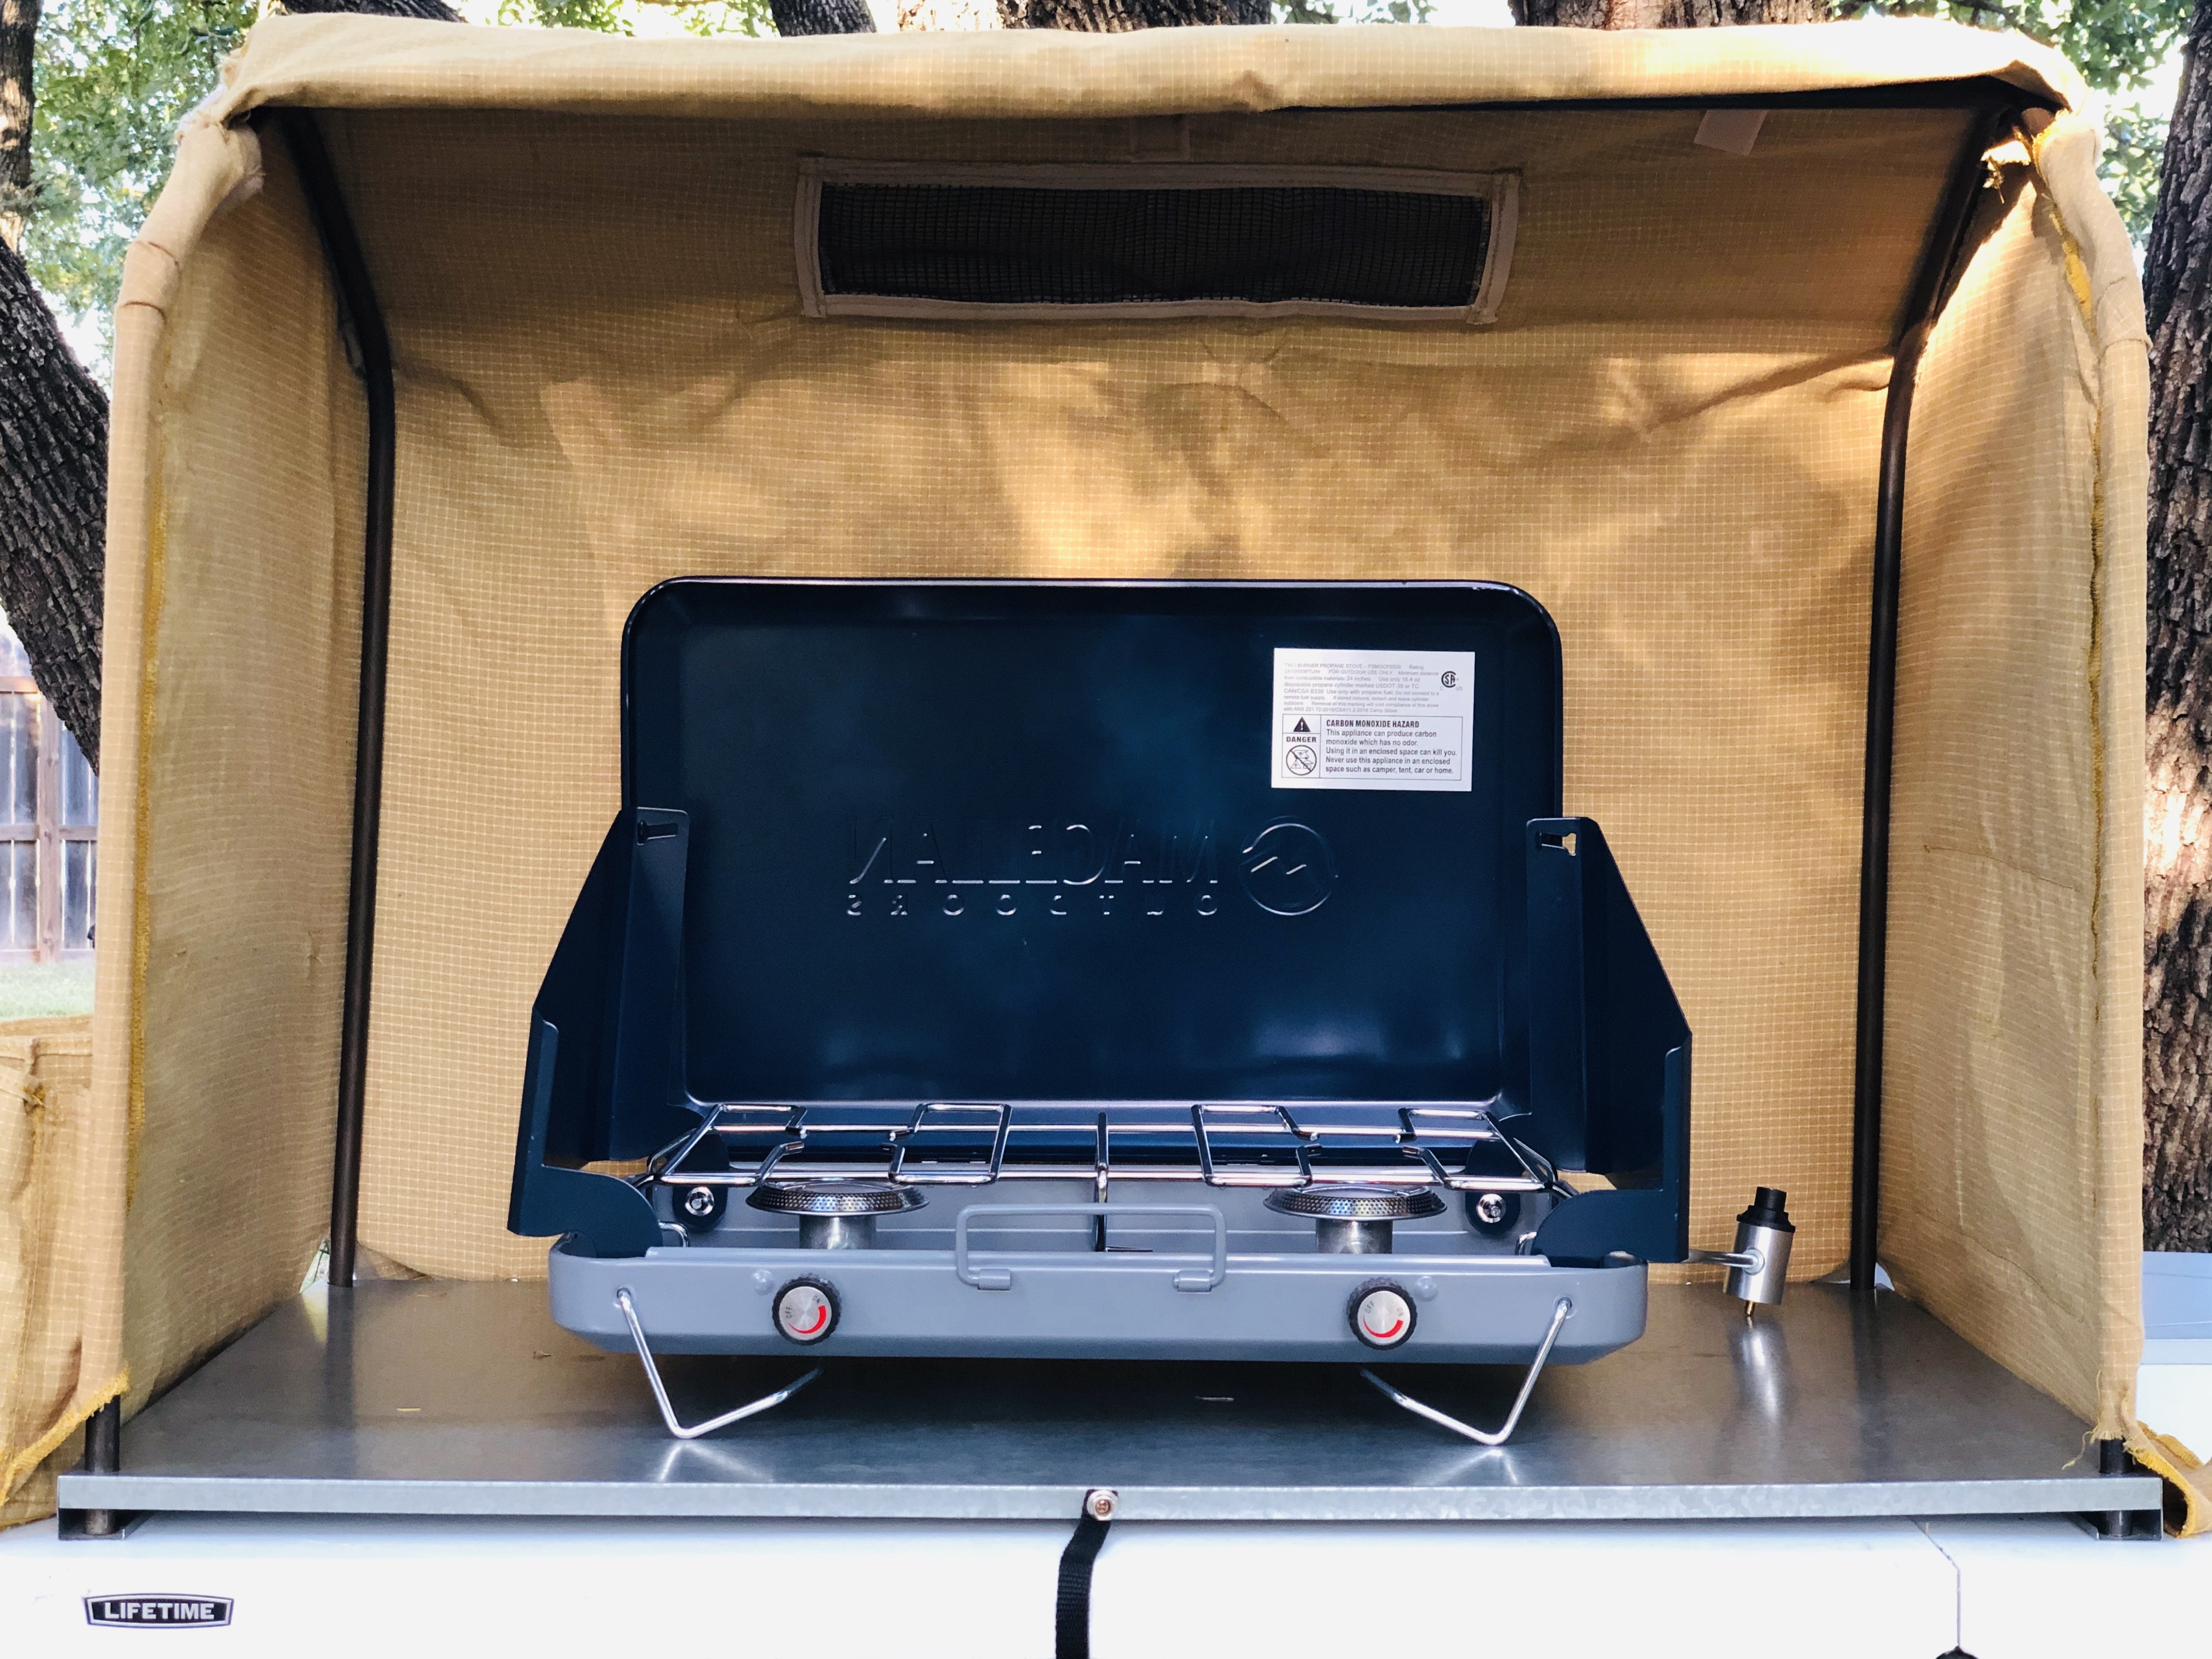 Wind Tamer Camp Stove Companion Review Payne Outdoors